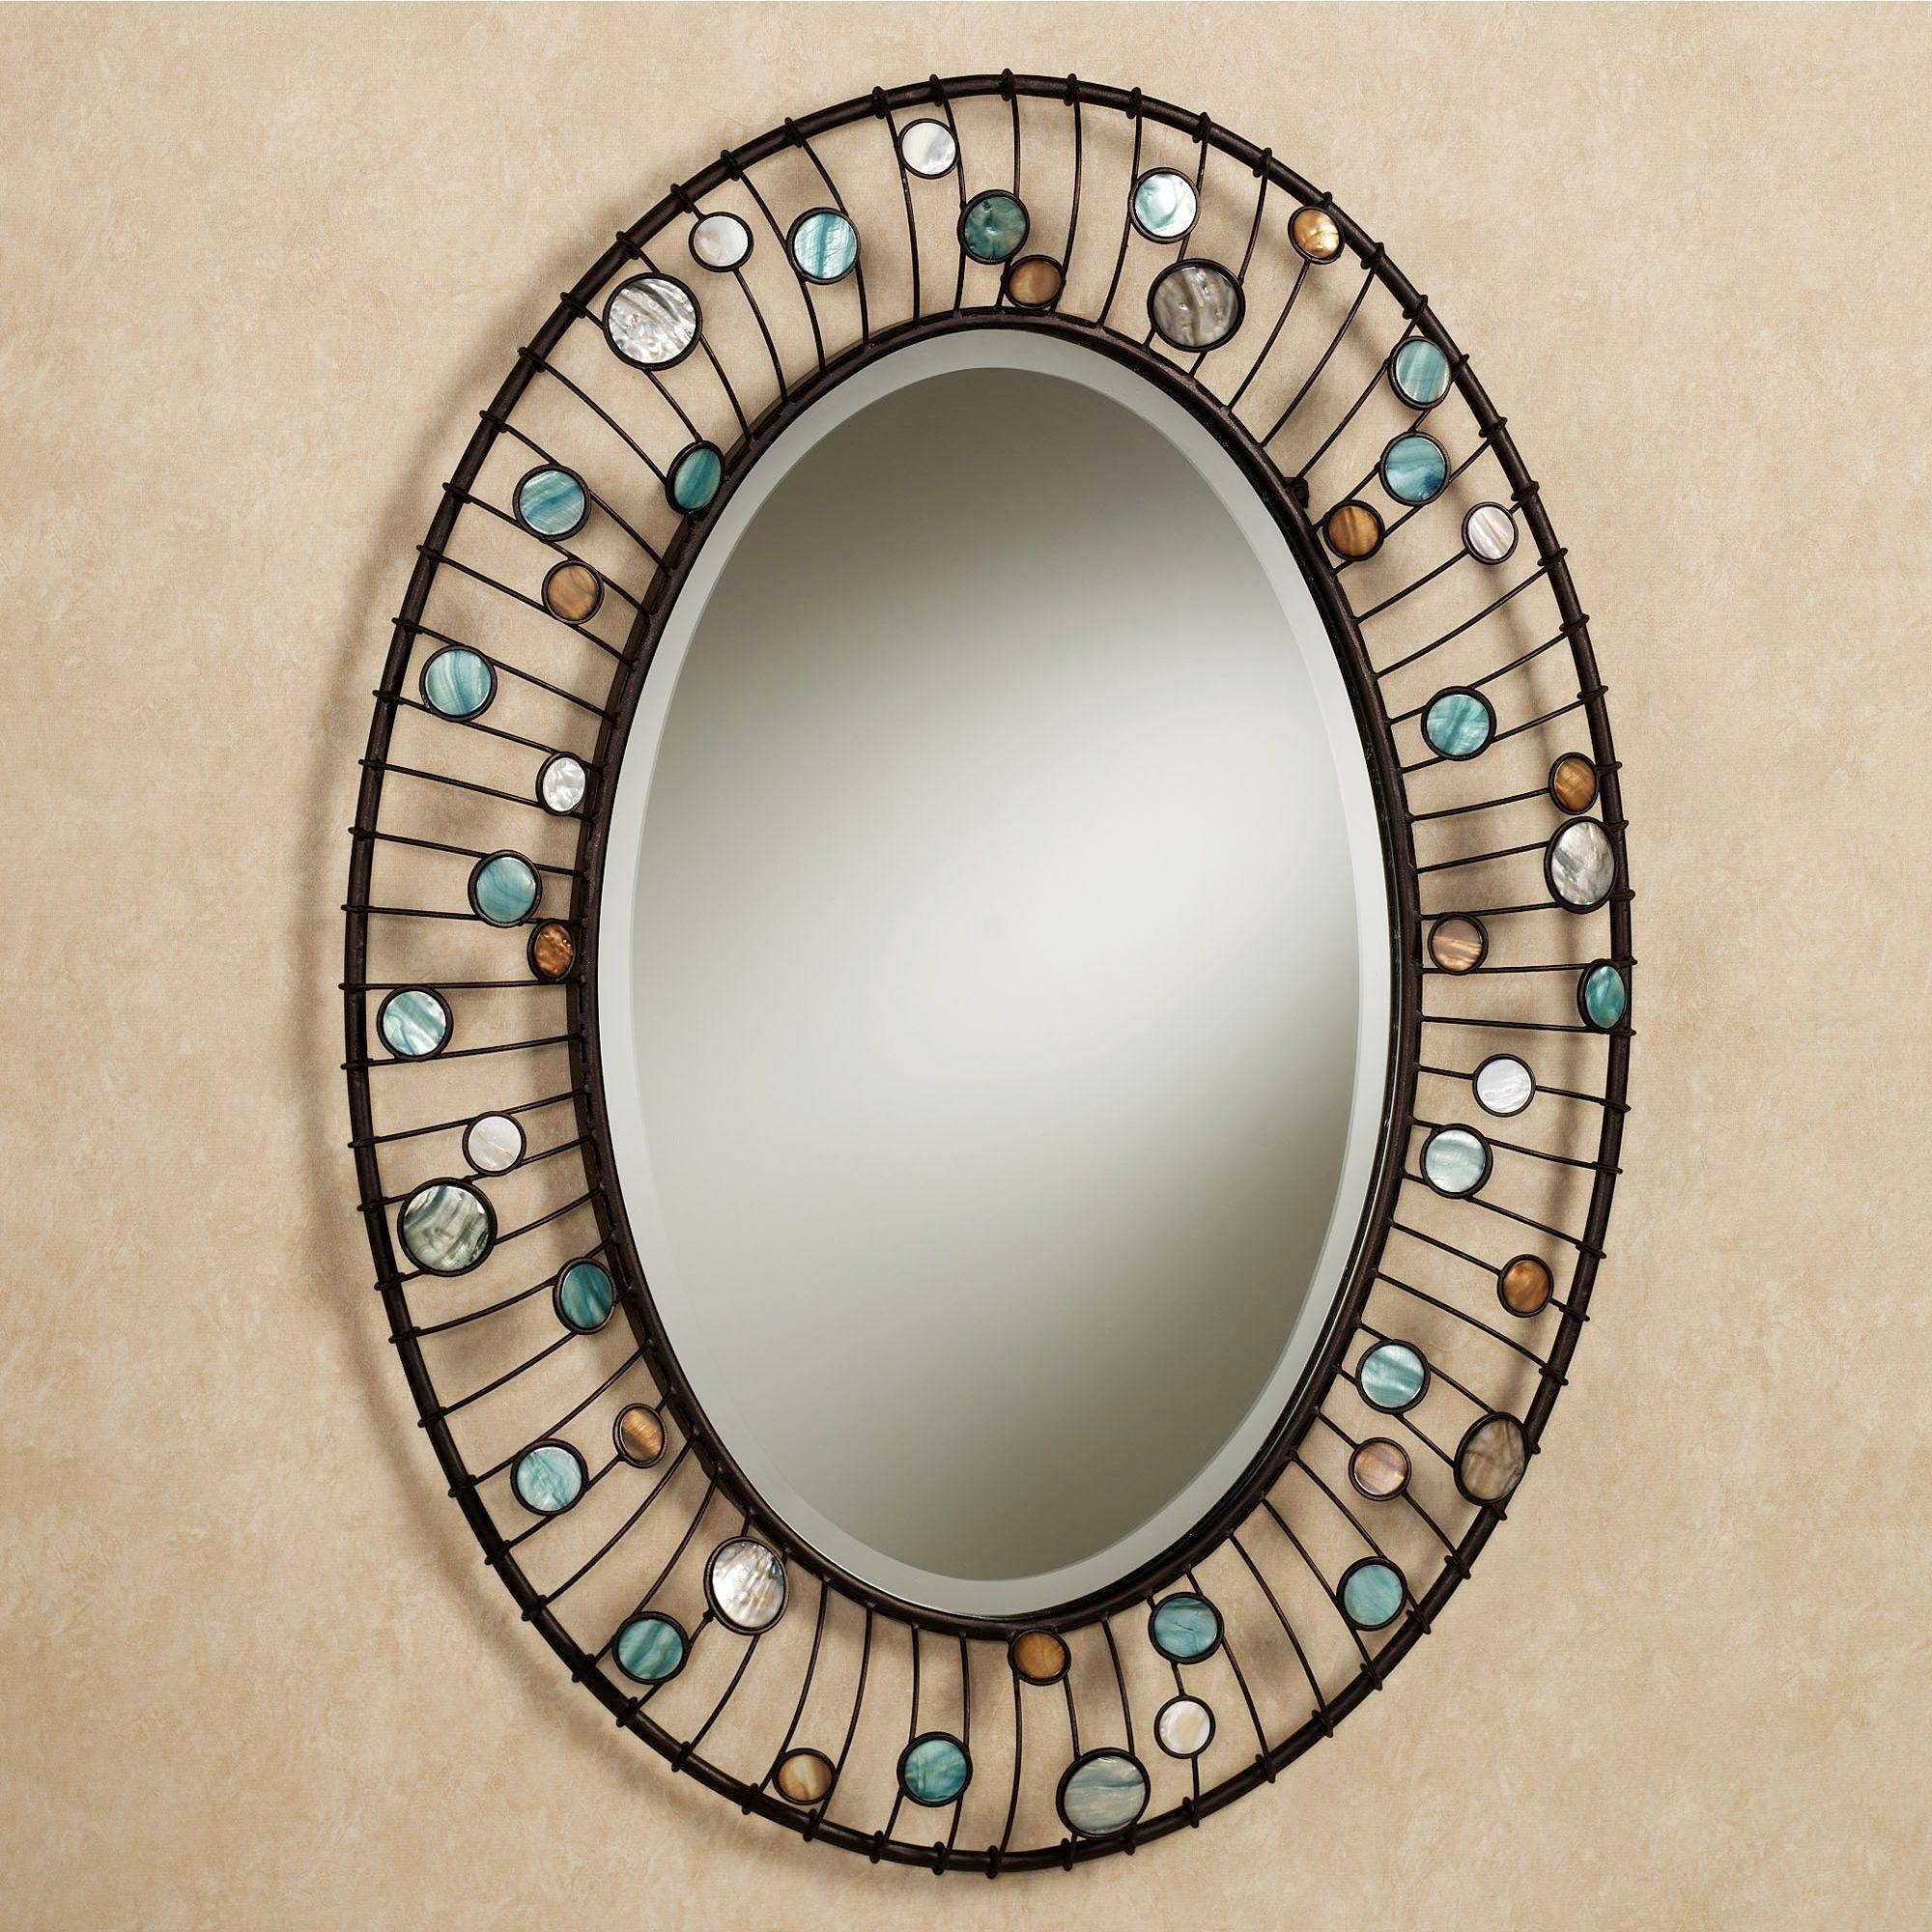 Capizia Oval Wall Mirror regarding Oval Wall Mirrors (Image 3 of 25)